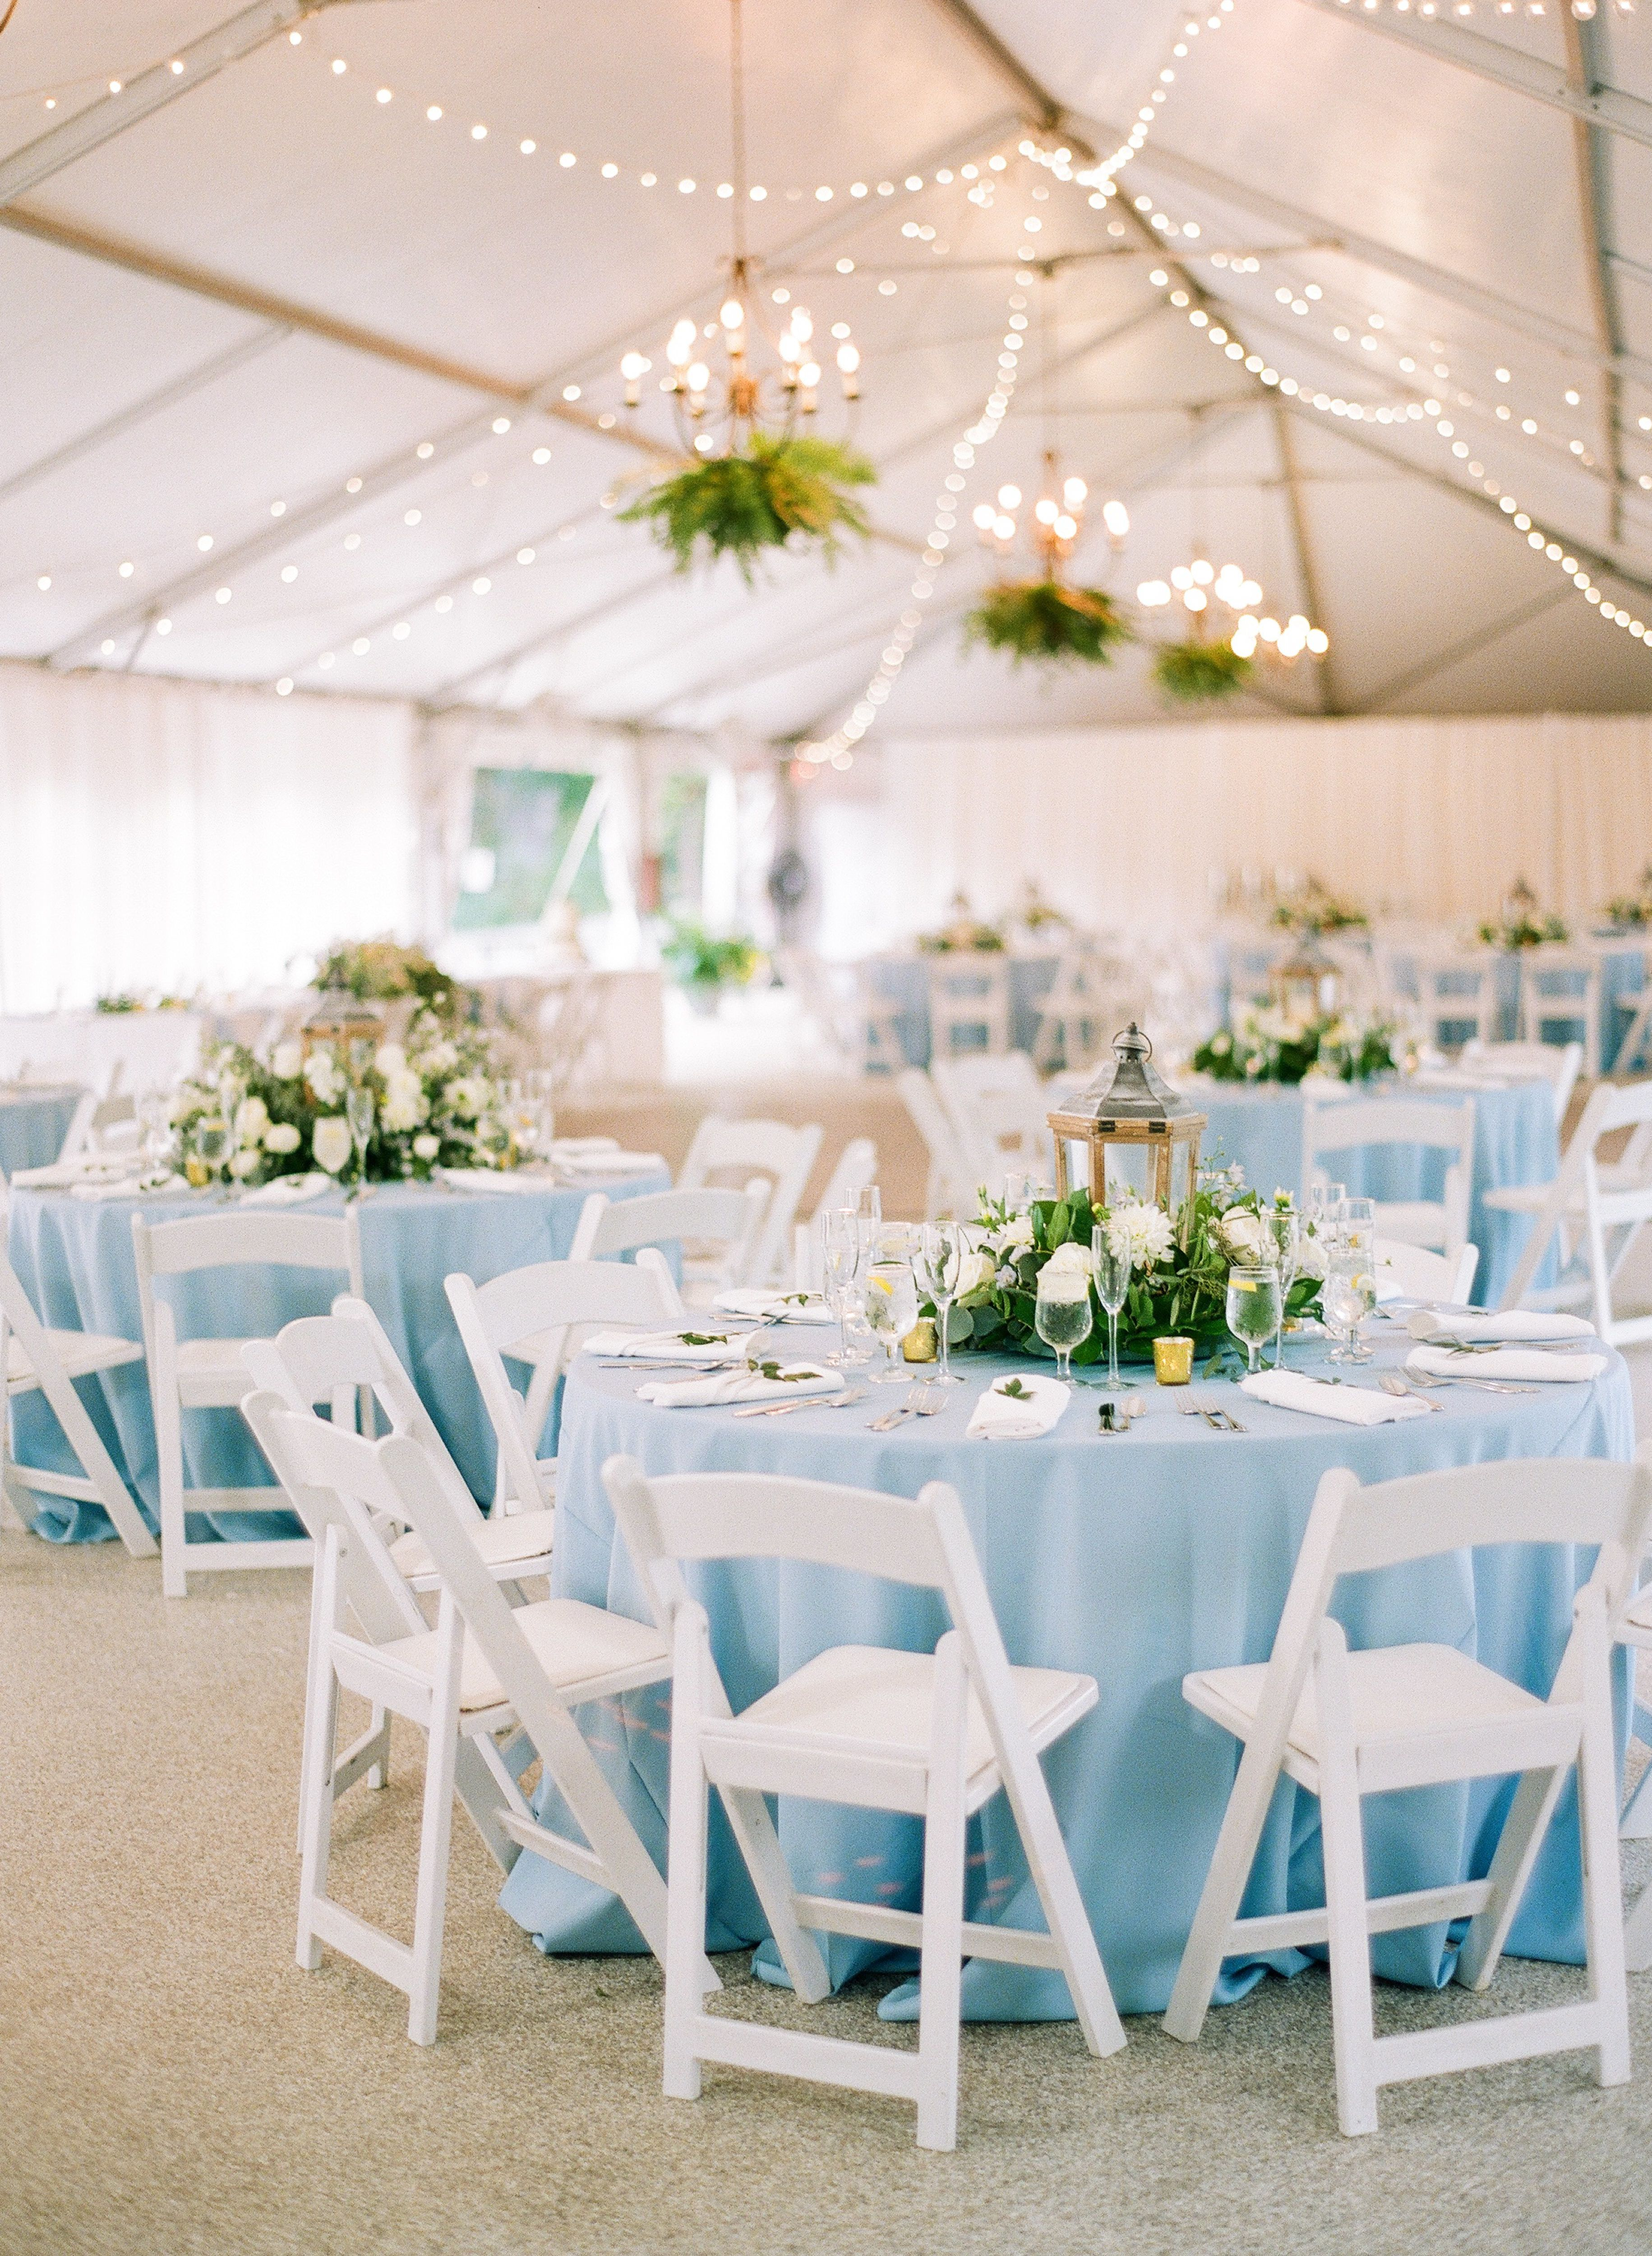 Dusty Blue Garden Wedding At The Rust Manor House In